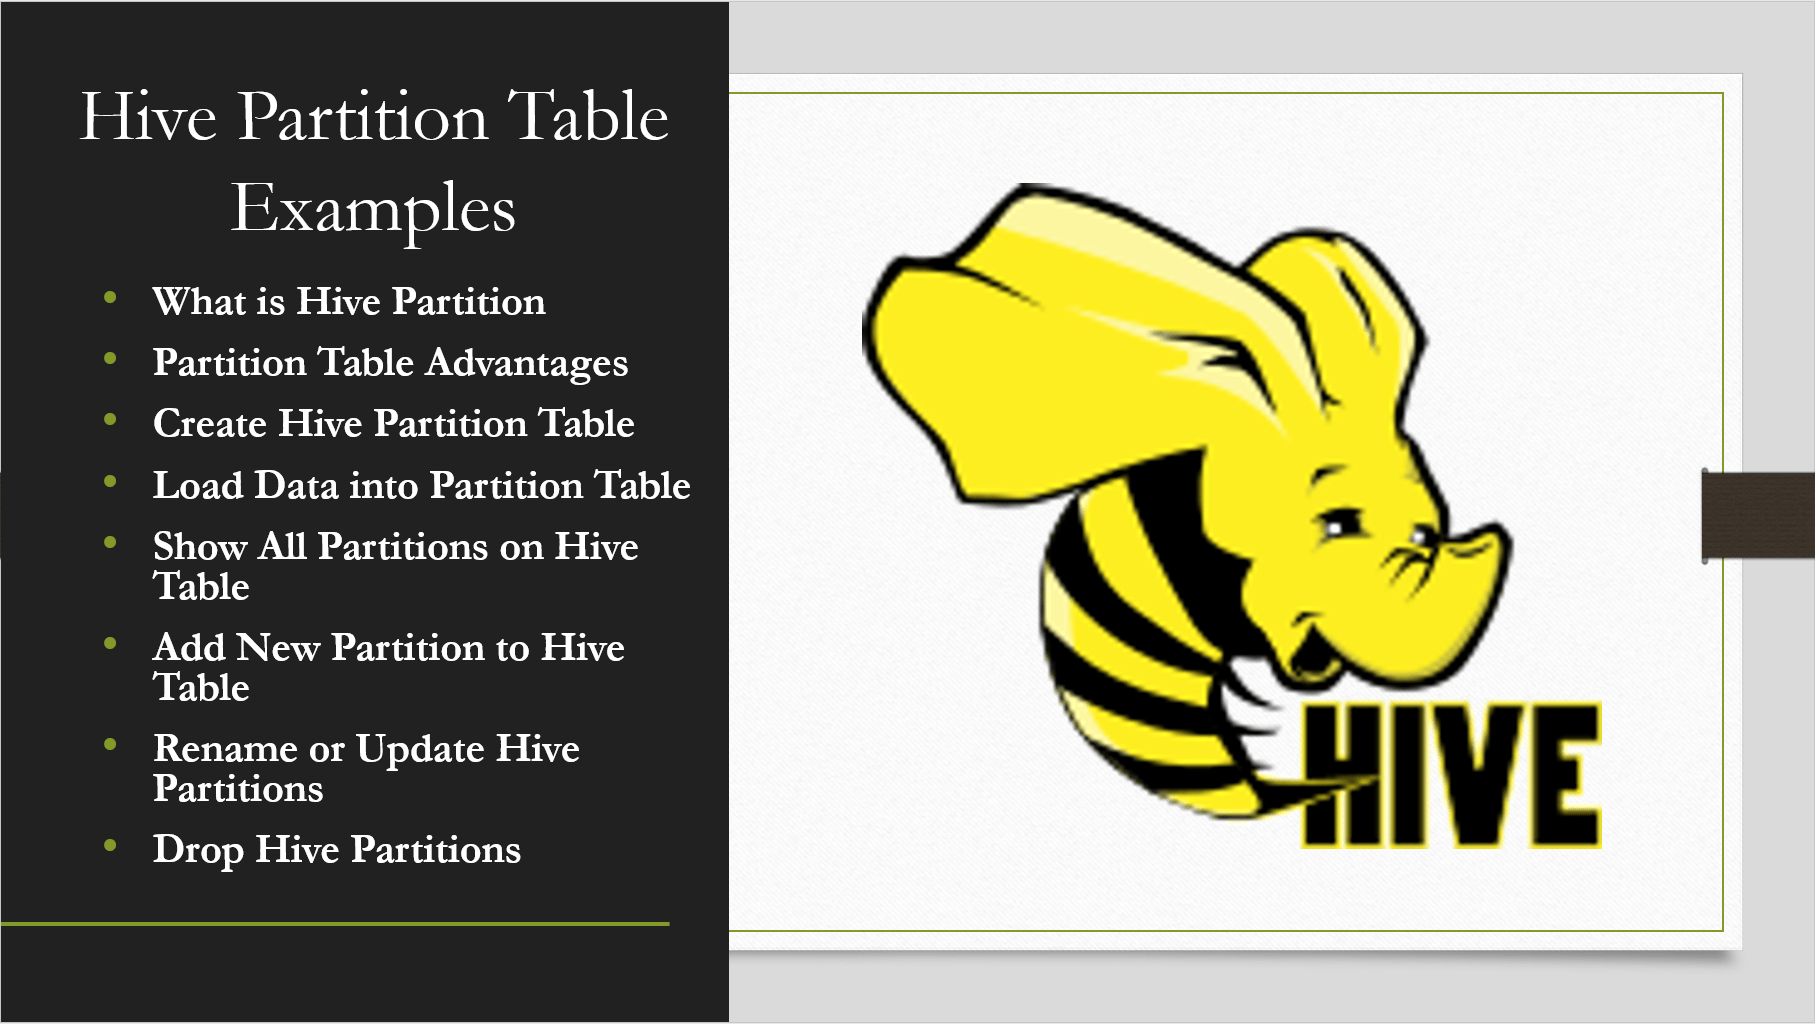 Hive Partitions Explained with Examples